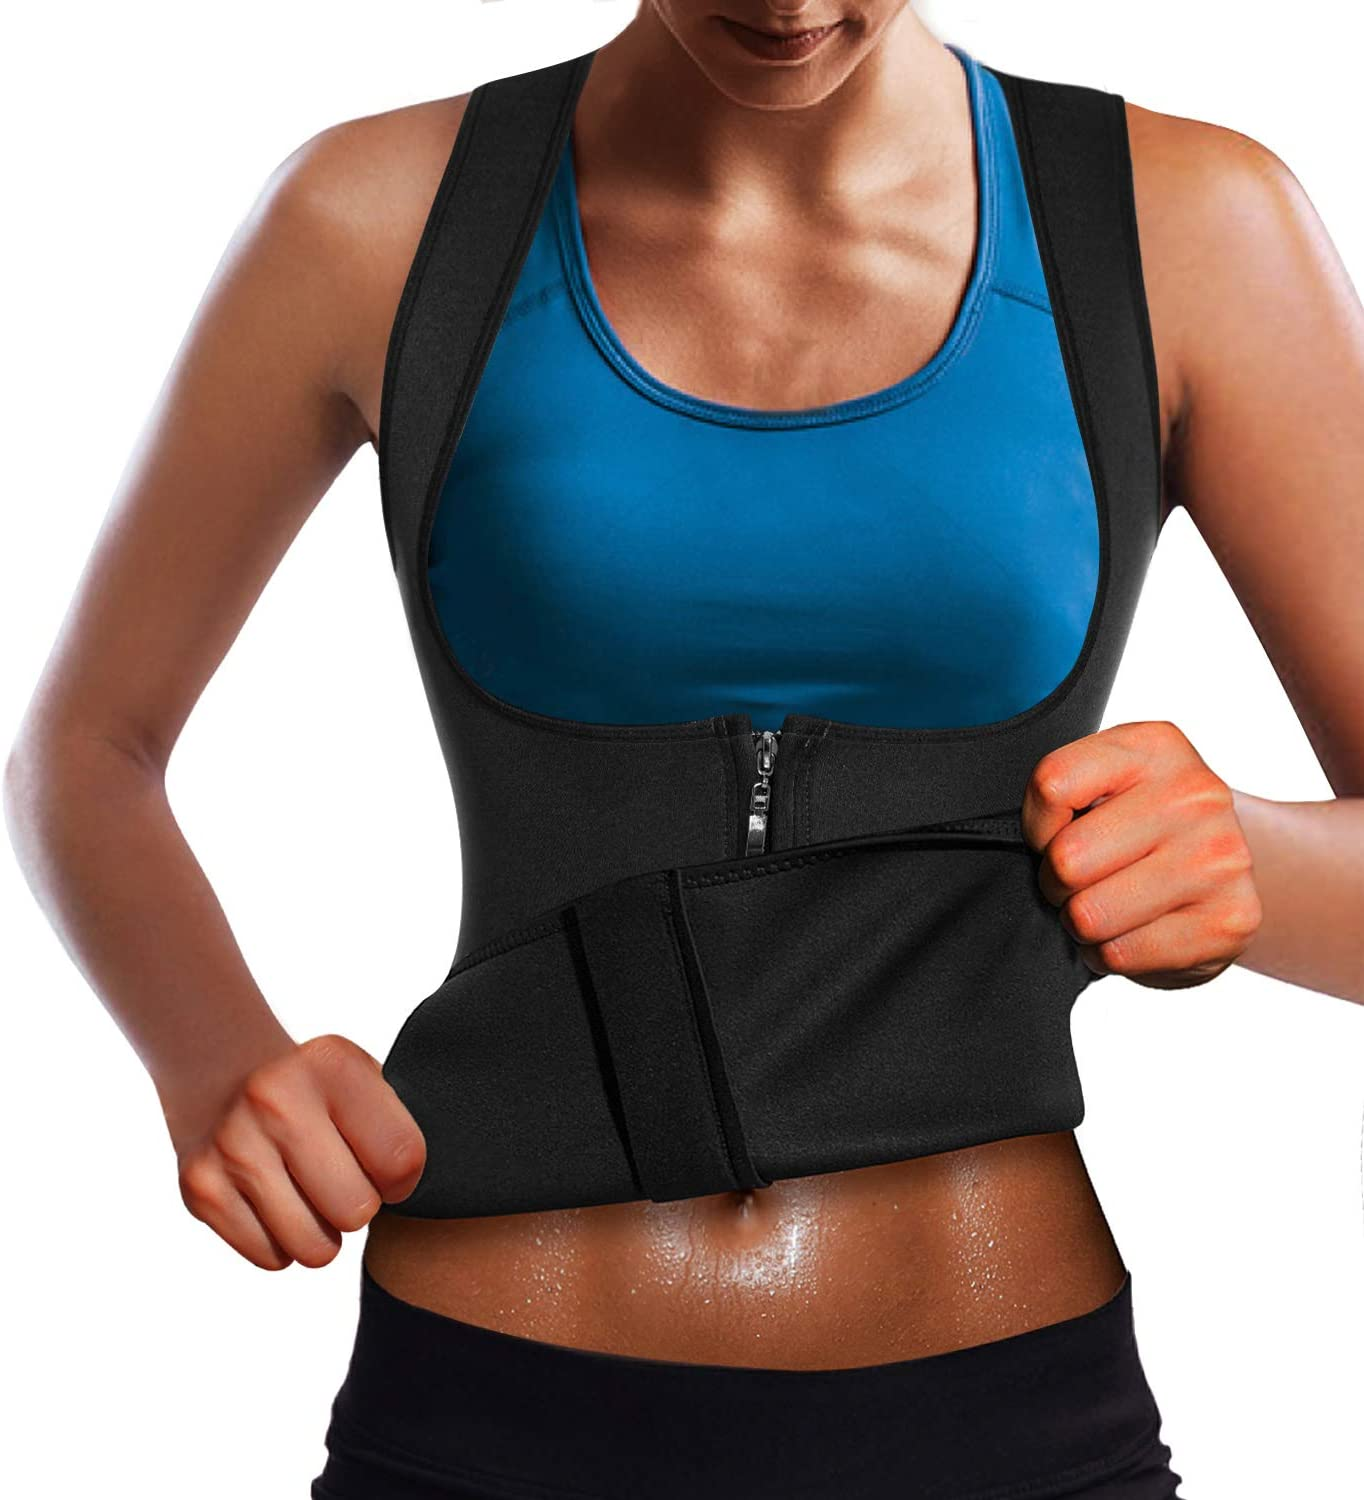 Wonderience Women Neoprene Sauna Suit Waist Trainer Vest for Weight Loss Hot Thermal Corset Body Shaper Zipper Tank Top Workout Shirt